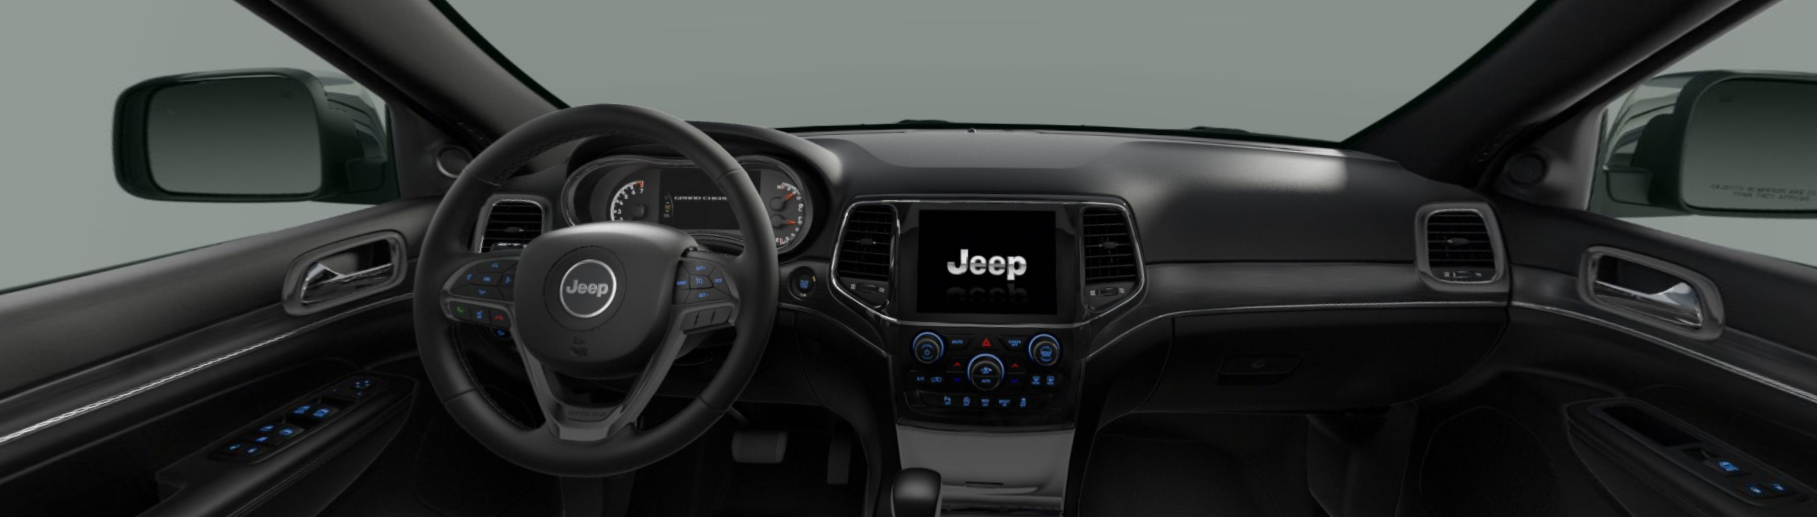 2020 Jeep Grand Cherokee Limited Front View Interior Dash Picture